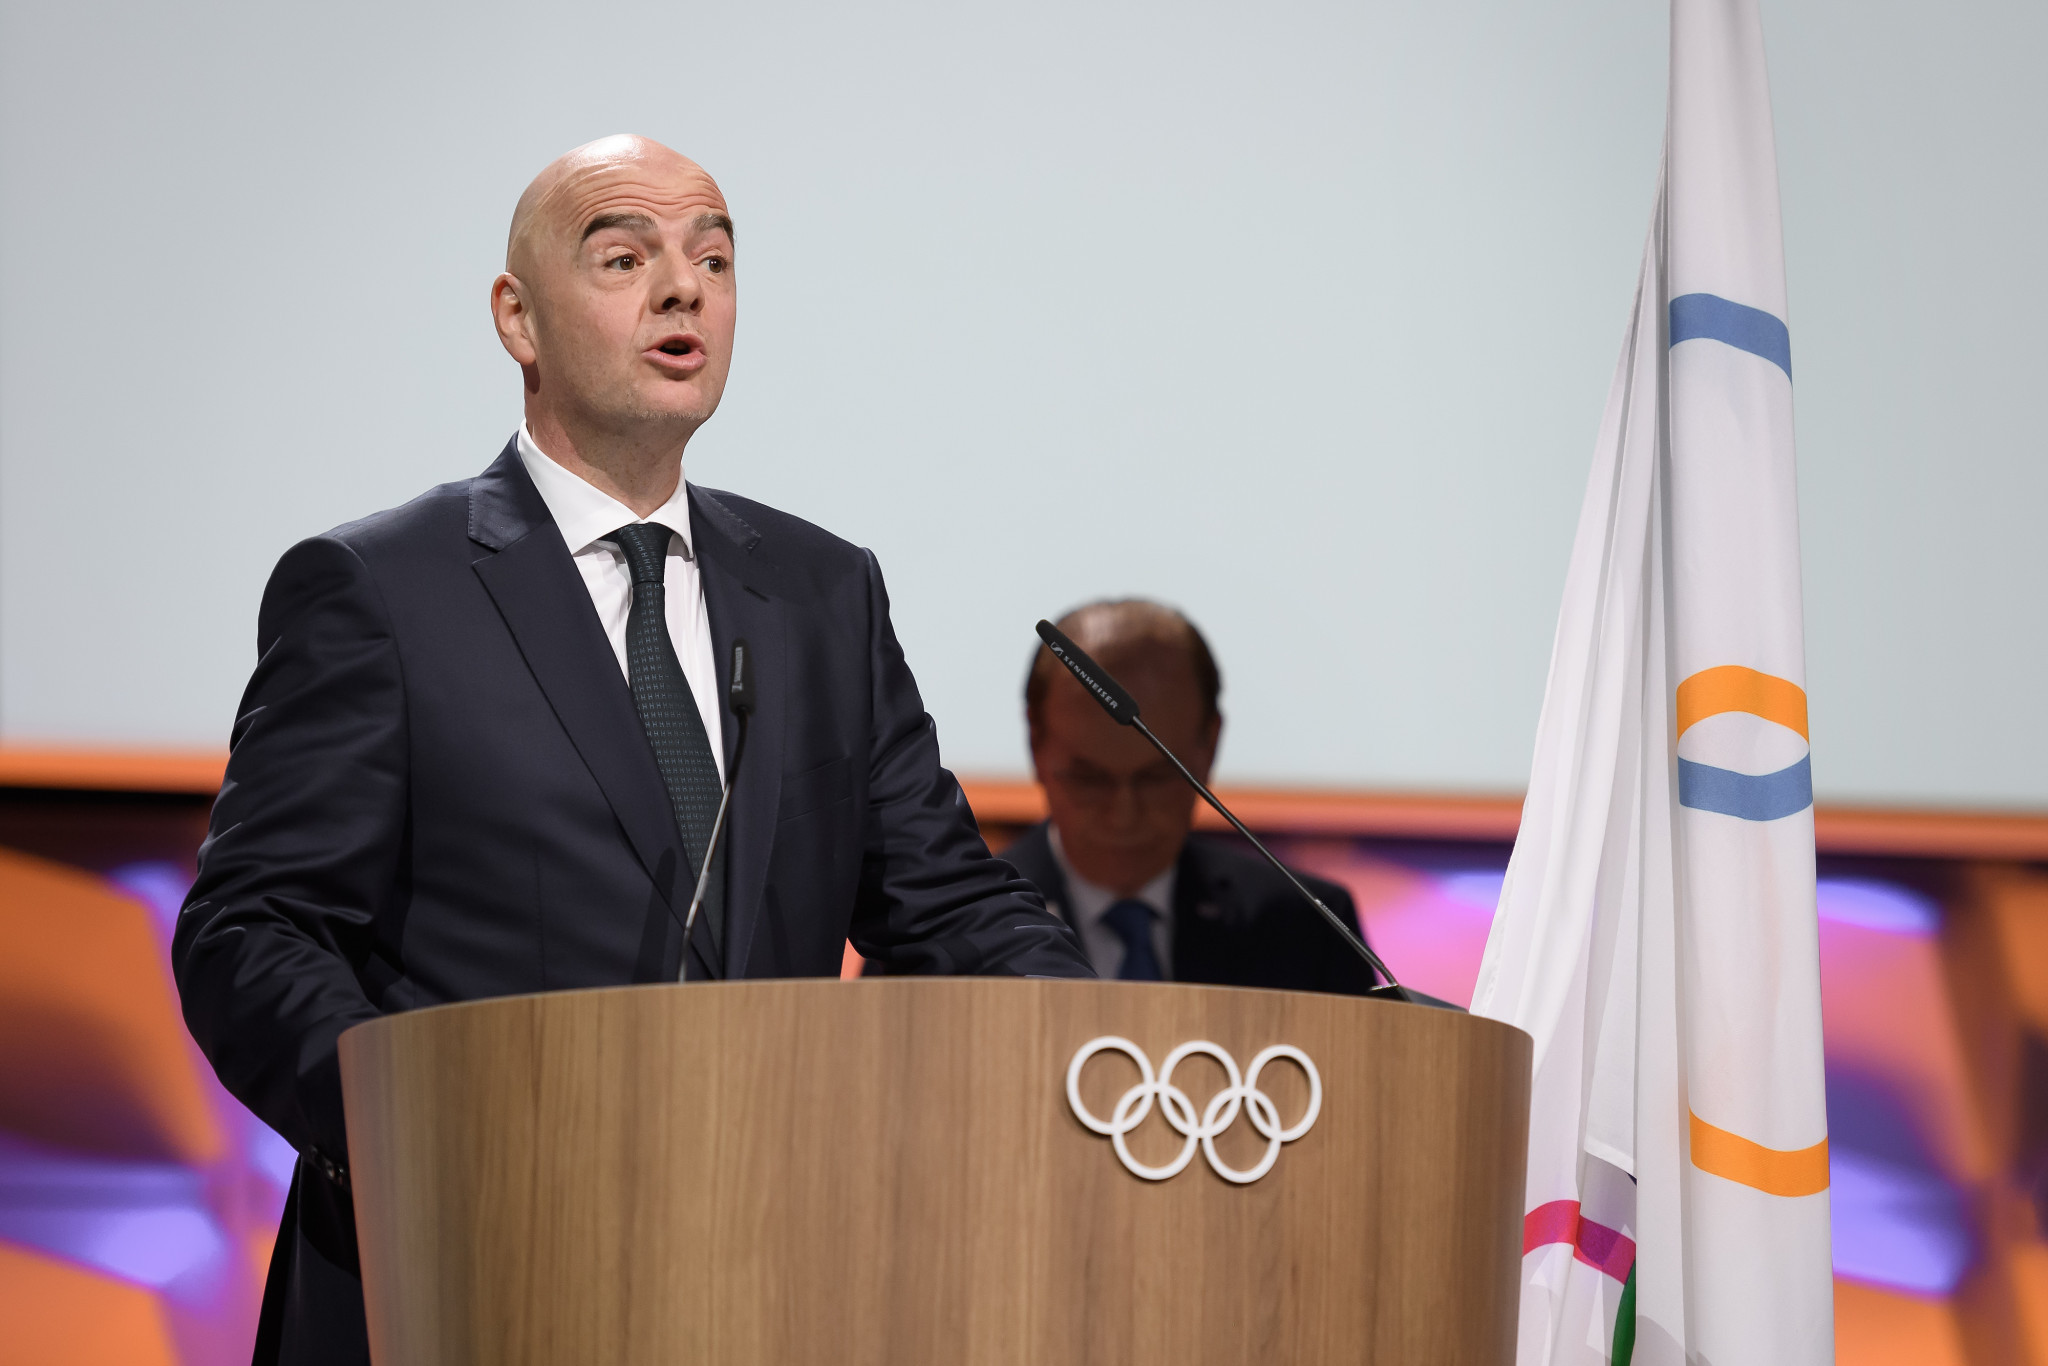 Gianni Infantino was among the three members elected at the IOC Session ©Getty Images